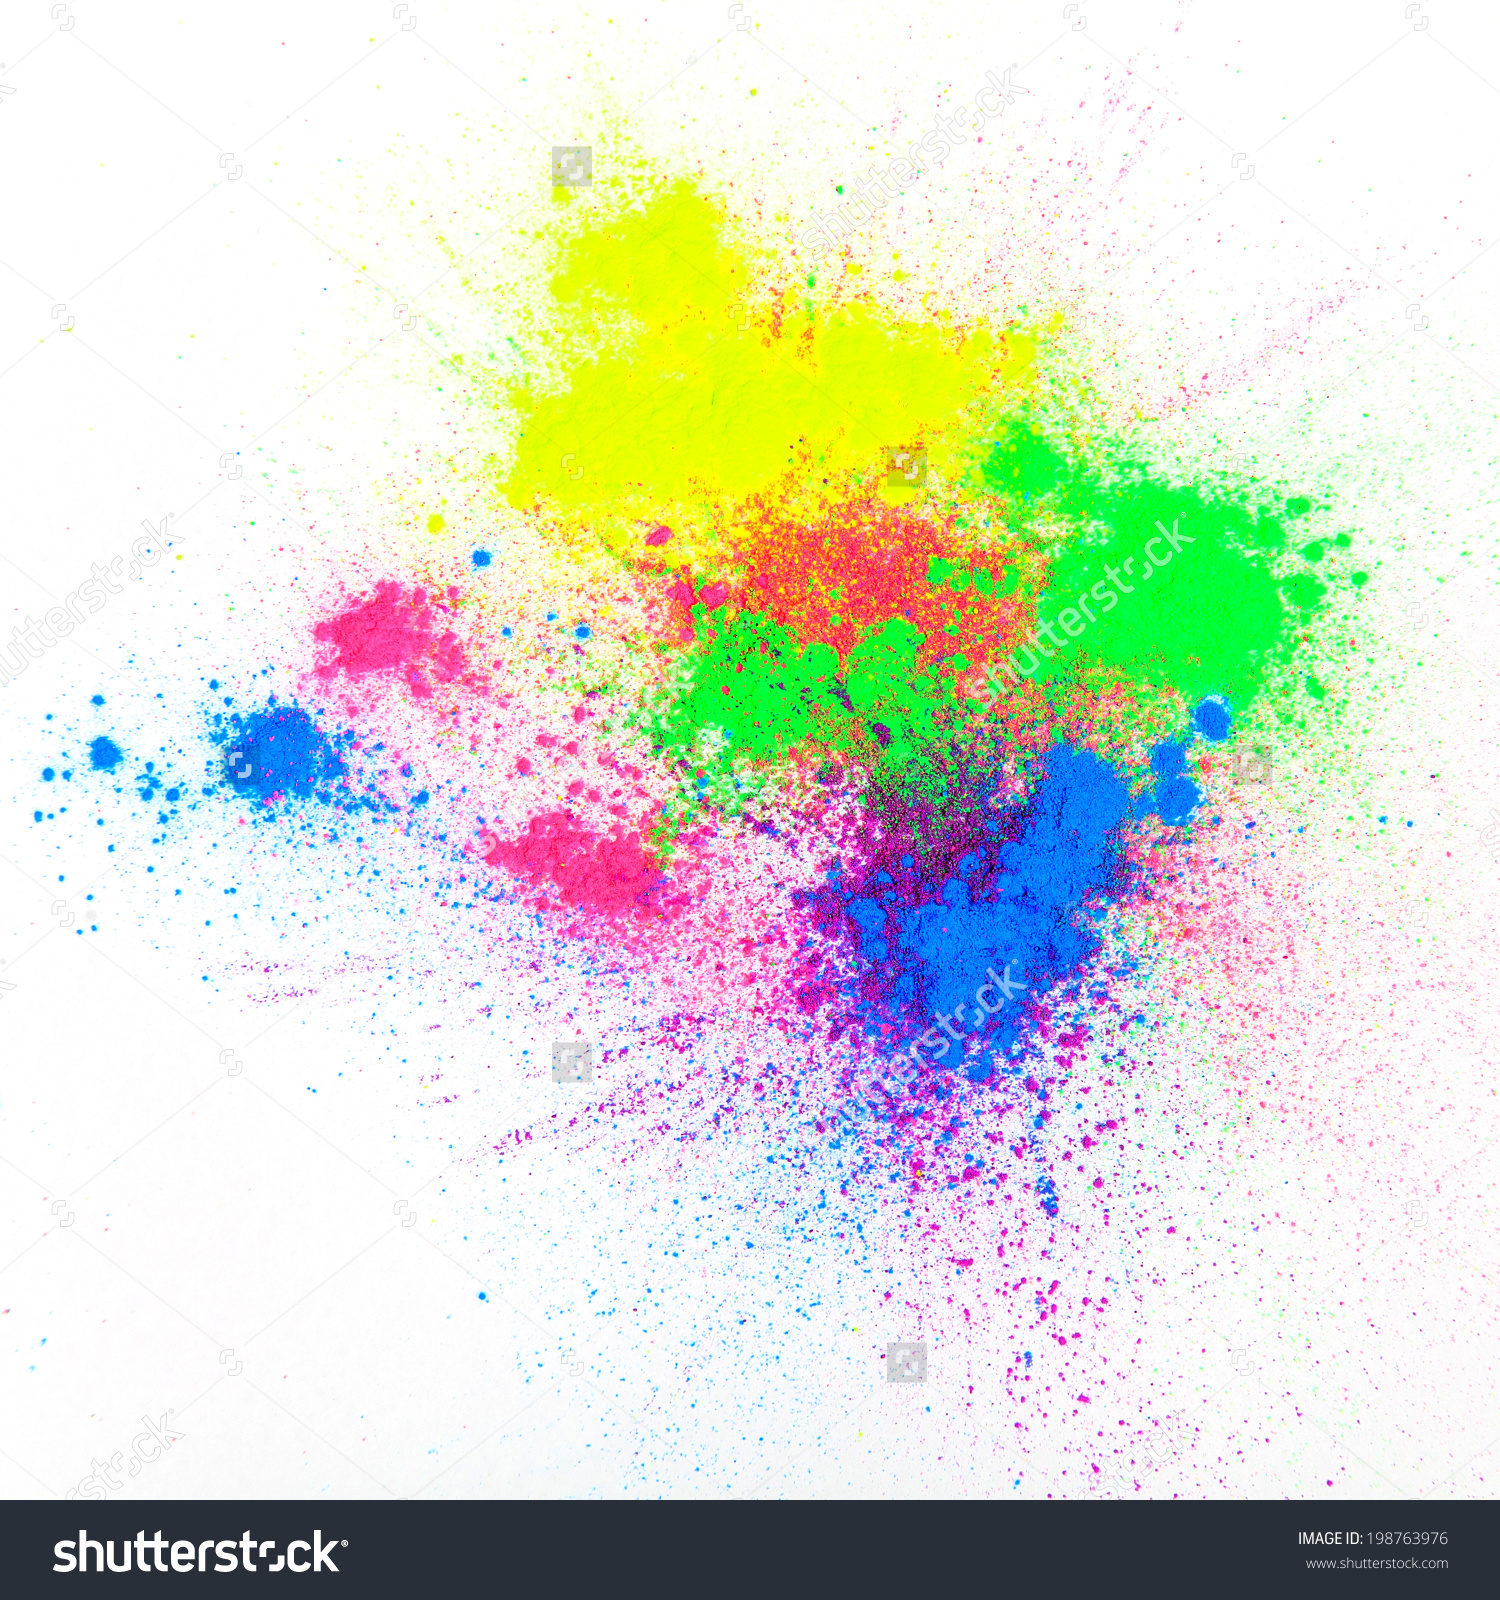 Color Powder On White Background Stock Photo 198763976.